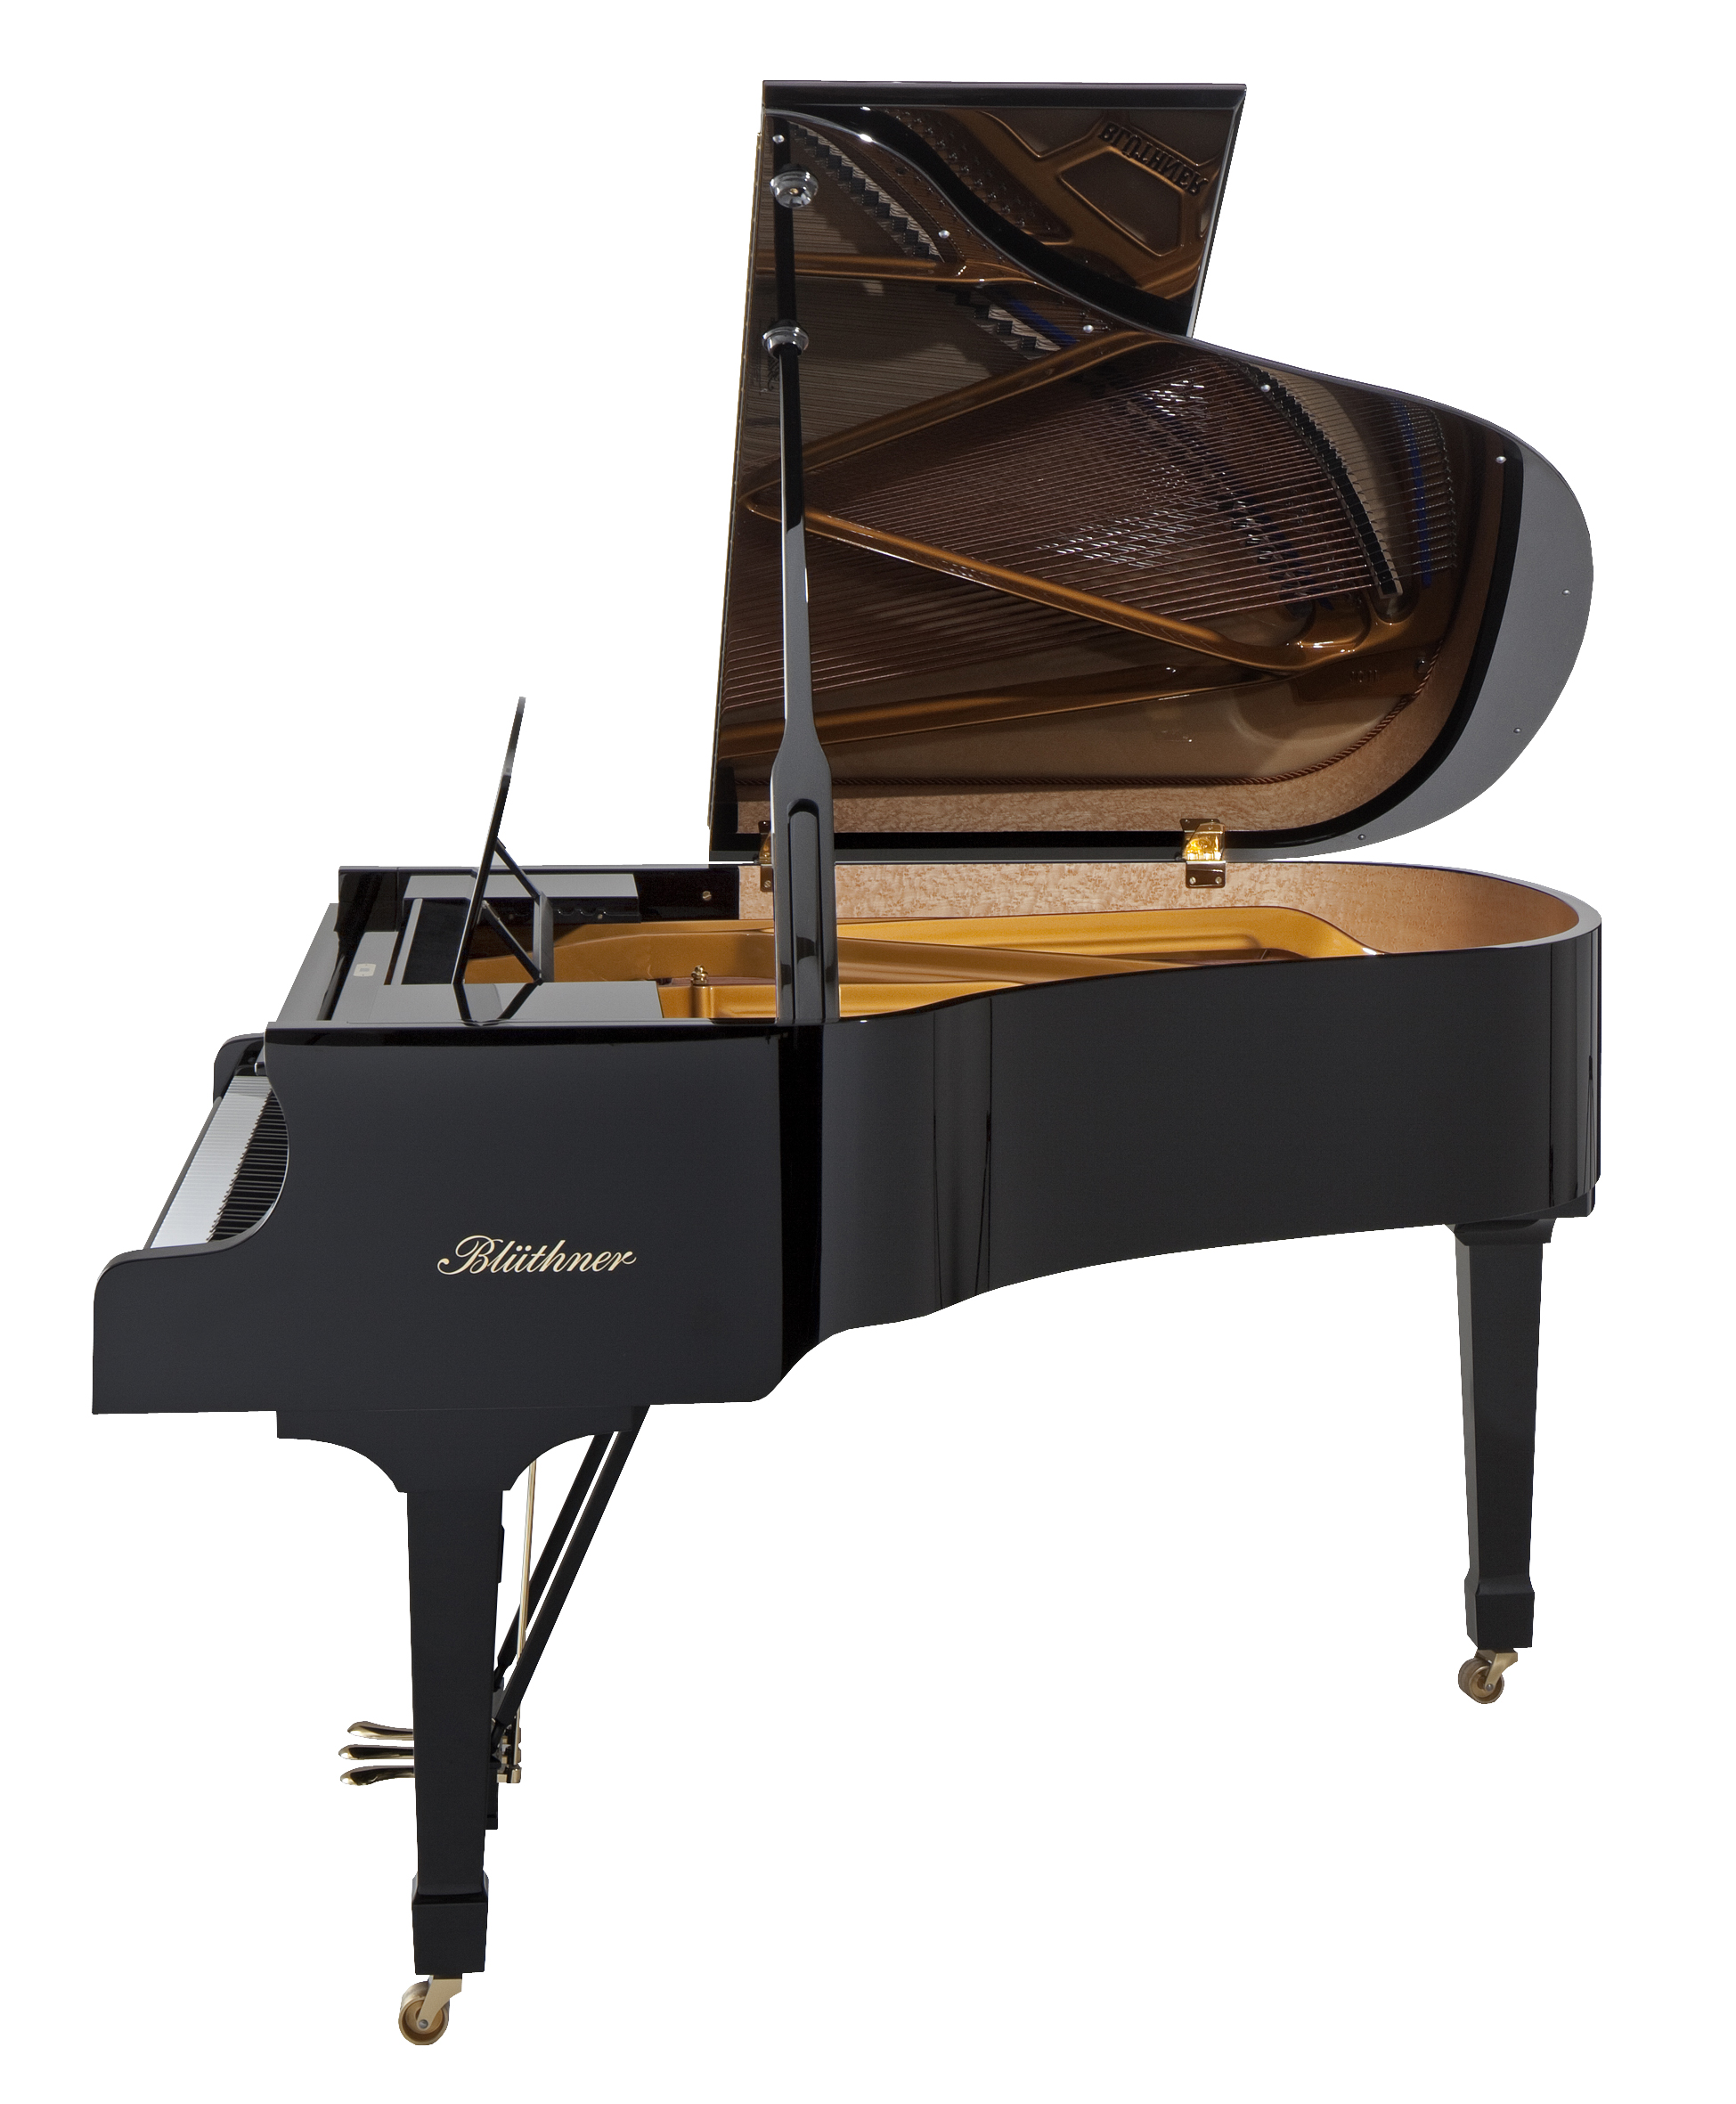 Bluthner Model 10 Black Small Grand Piano